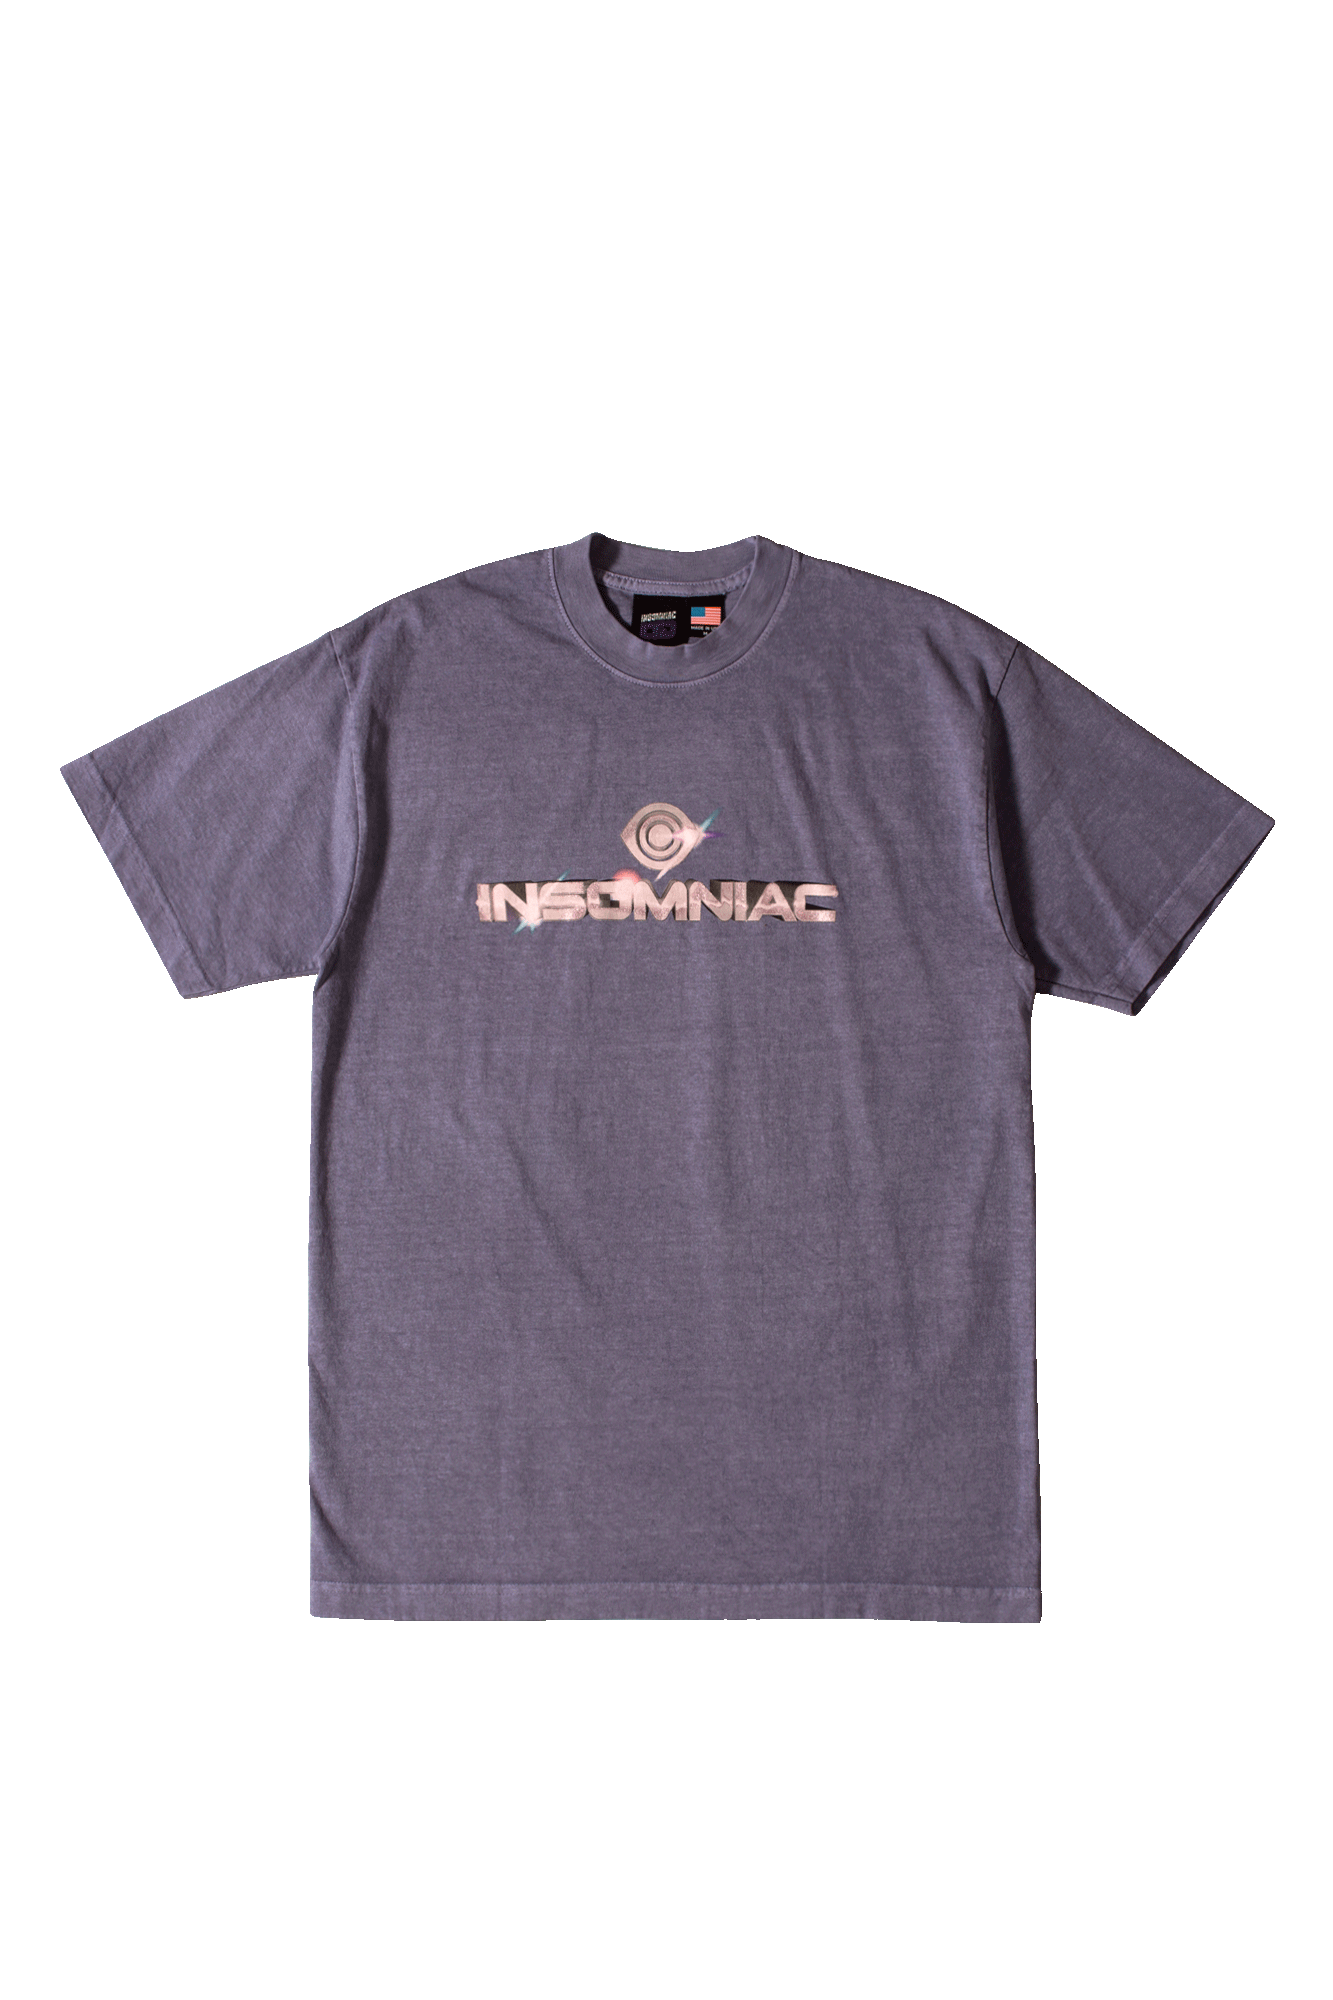 Insomniac LTD T-Shirts Cromeo T-Shirt Viola SP20MSST#0360#LVN#M - One Block Down